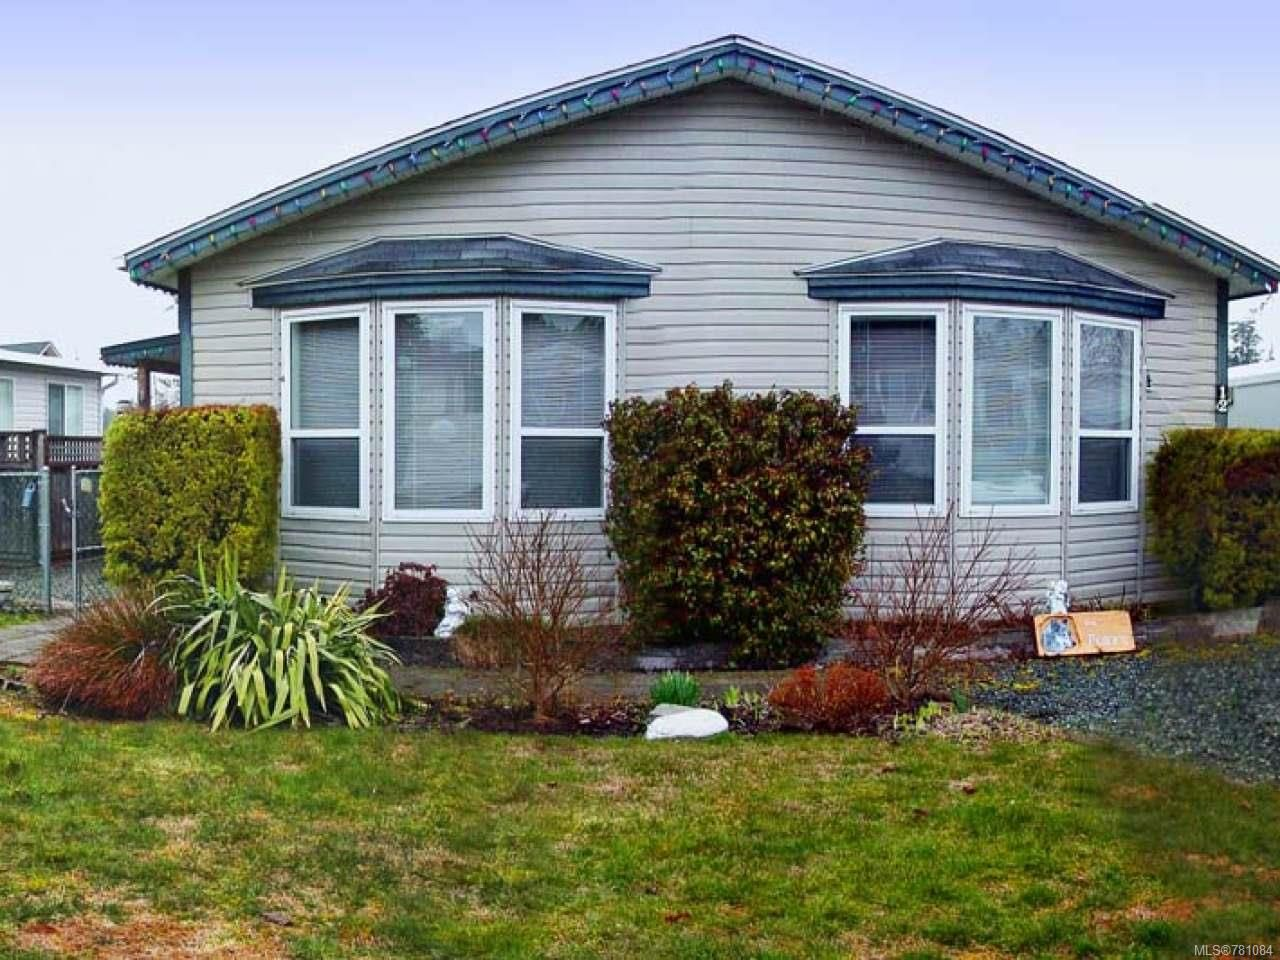 Main Photo: 12 1733 WHIBLEY ROAD in ERRINGTON: PQ Errington/Coombs/Hilliers Manufactured Home for sale (Parksville/Qualicum)  : MLS®# 781084